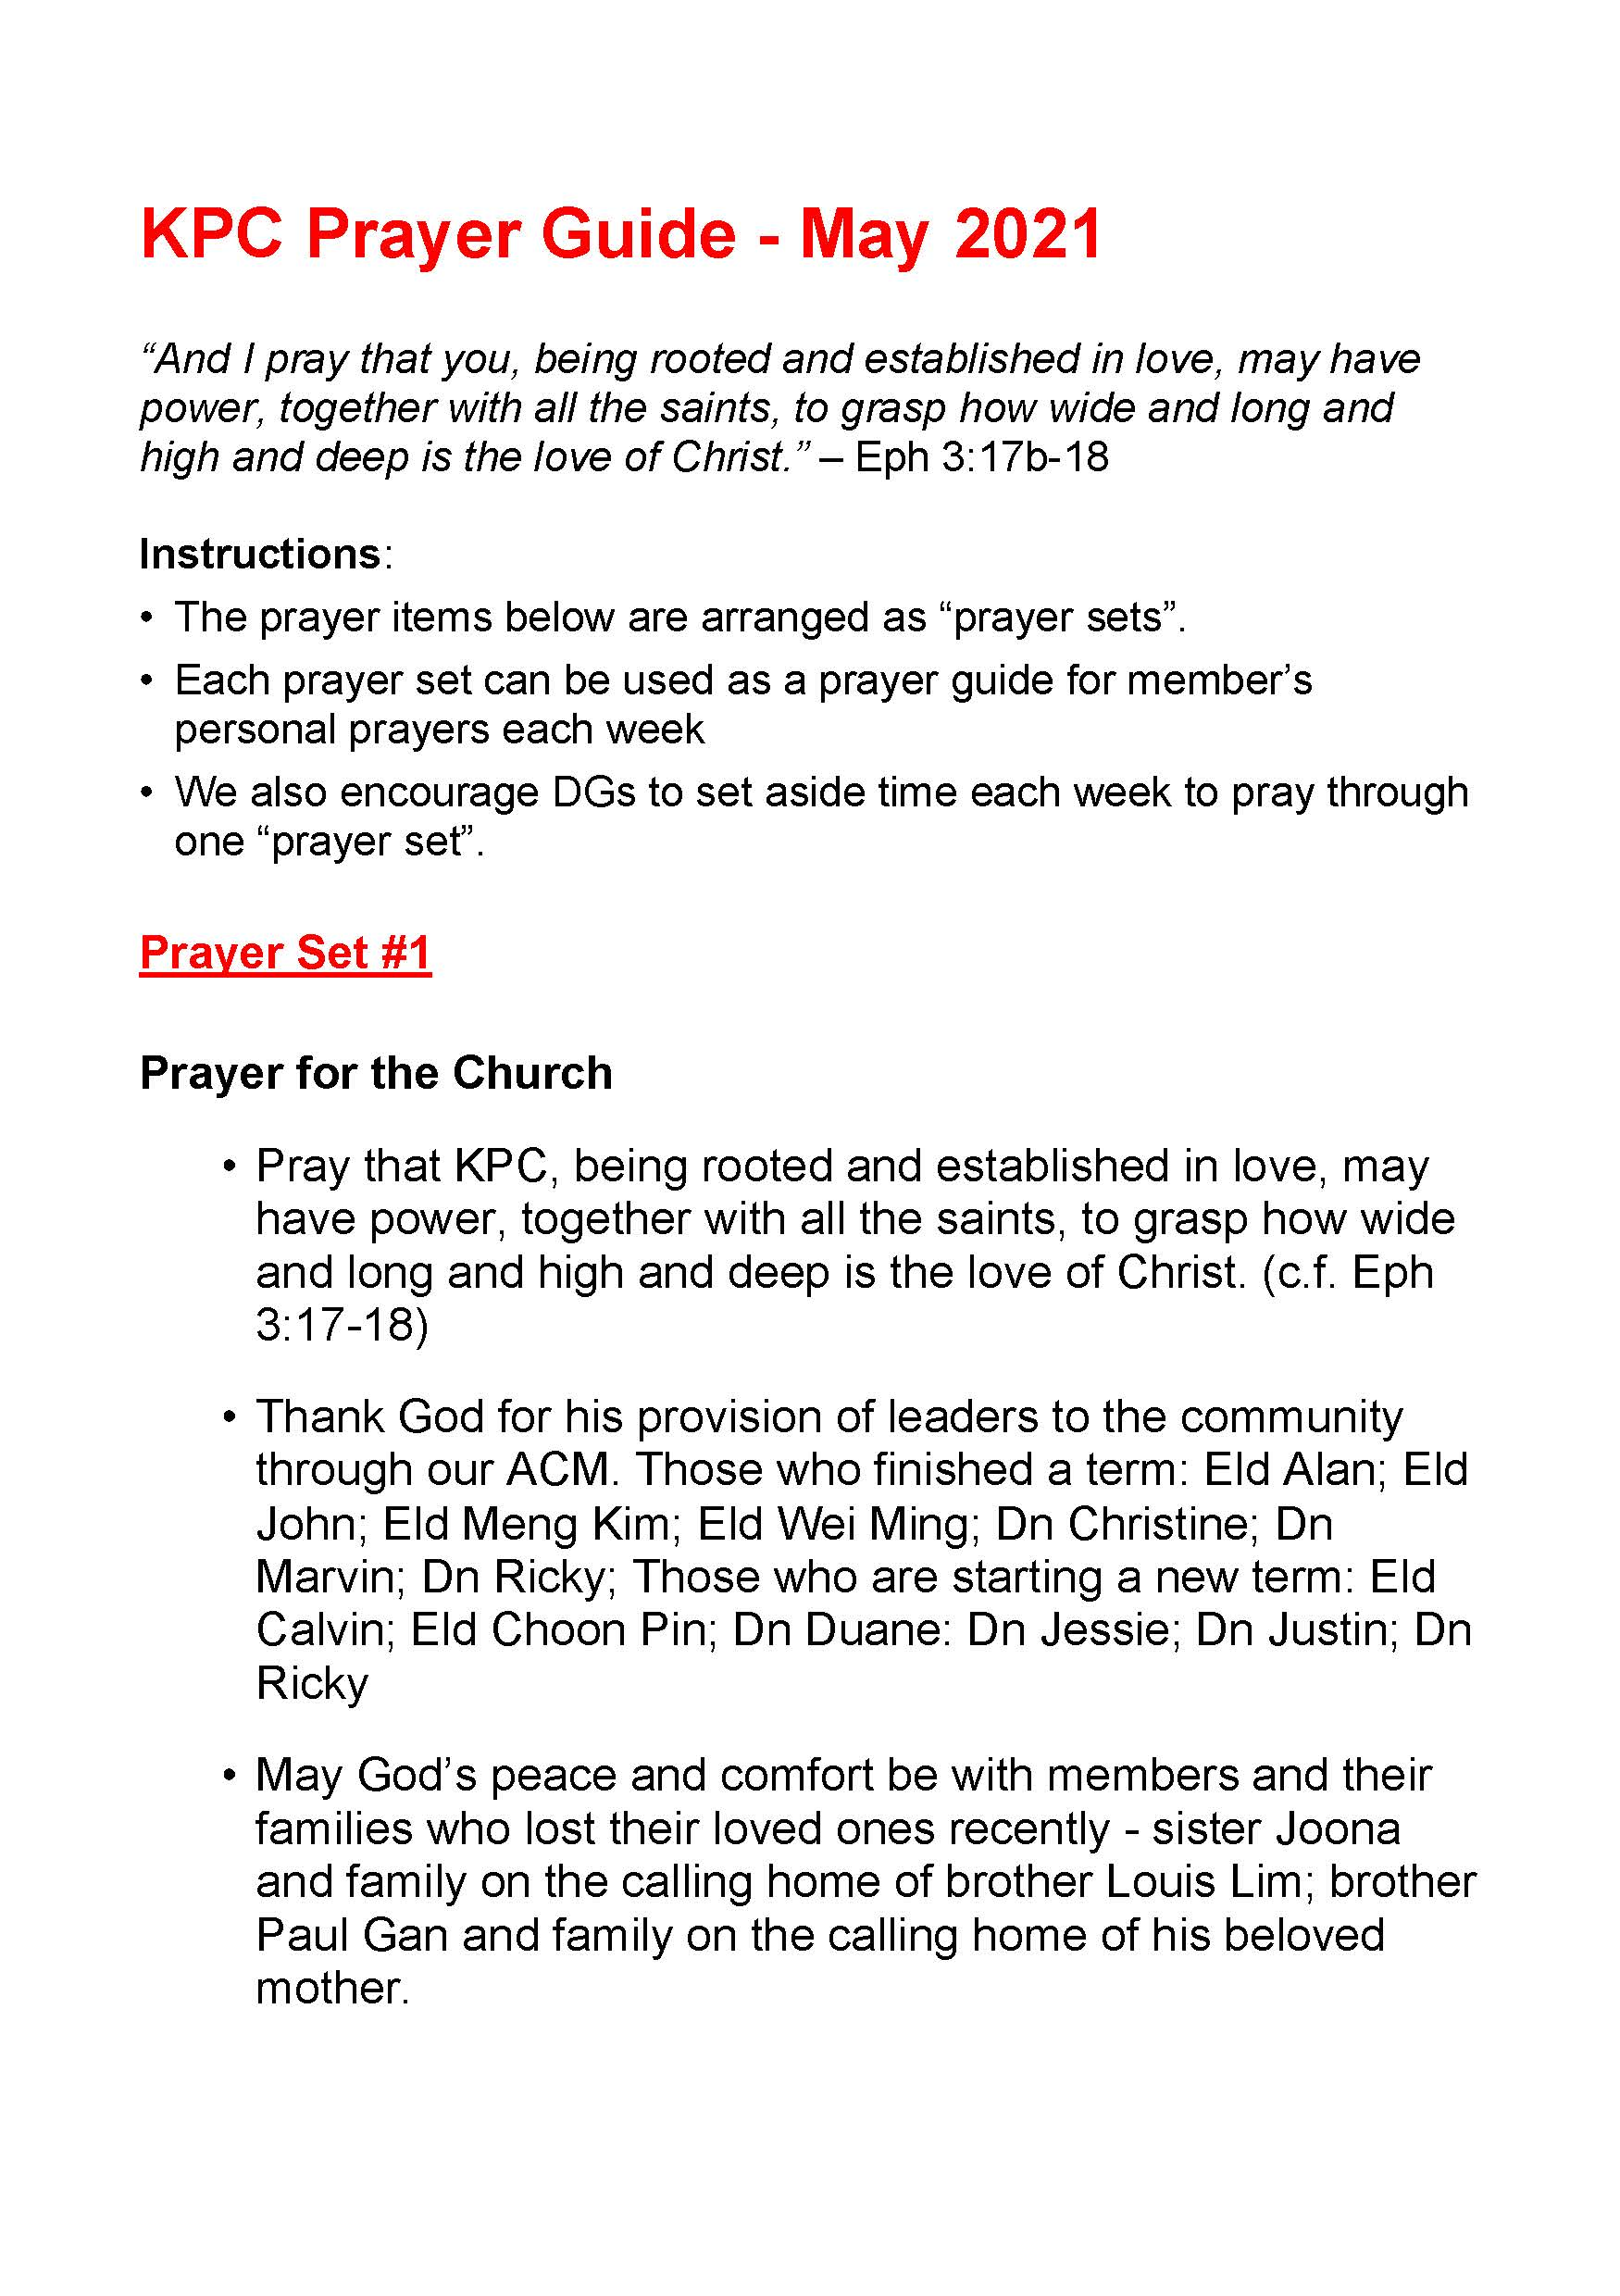 Prayer Guide - May 2021_Page_1